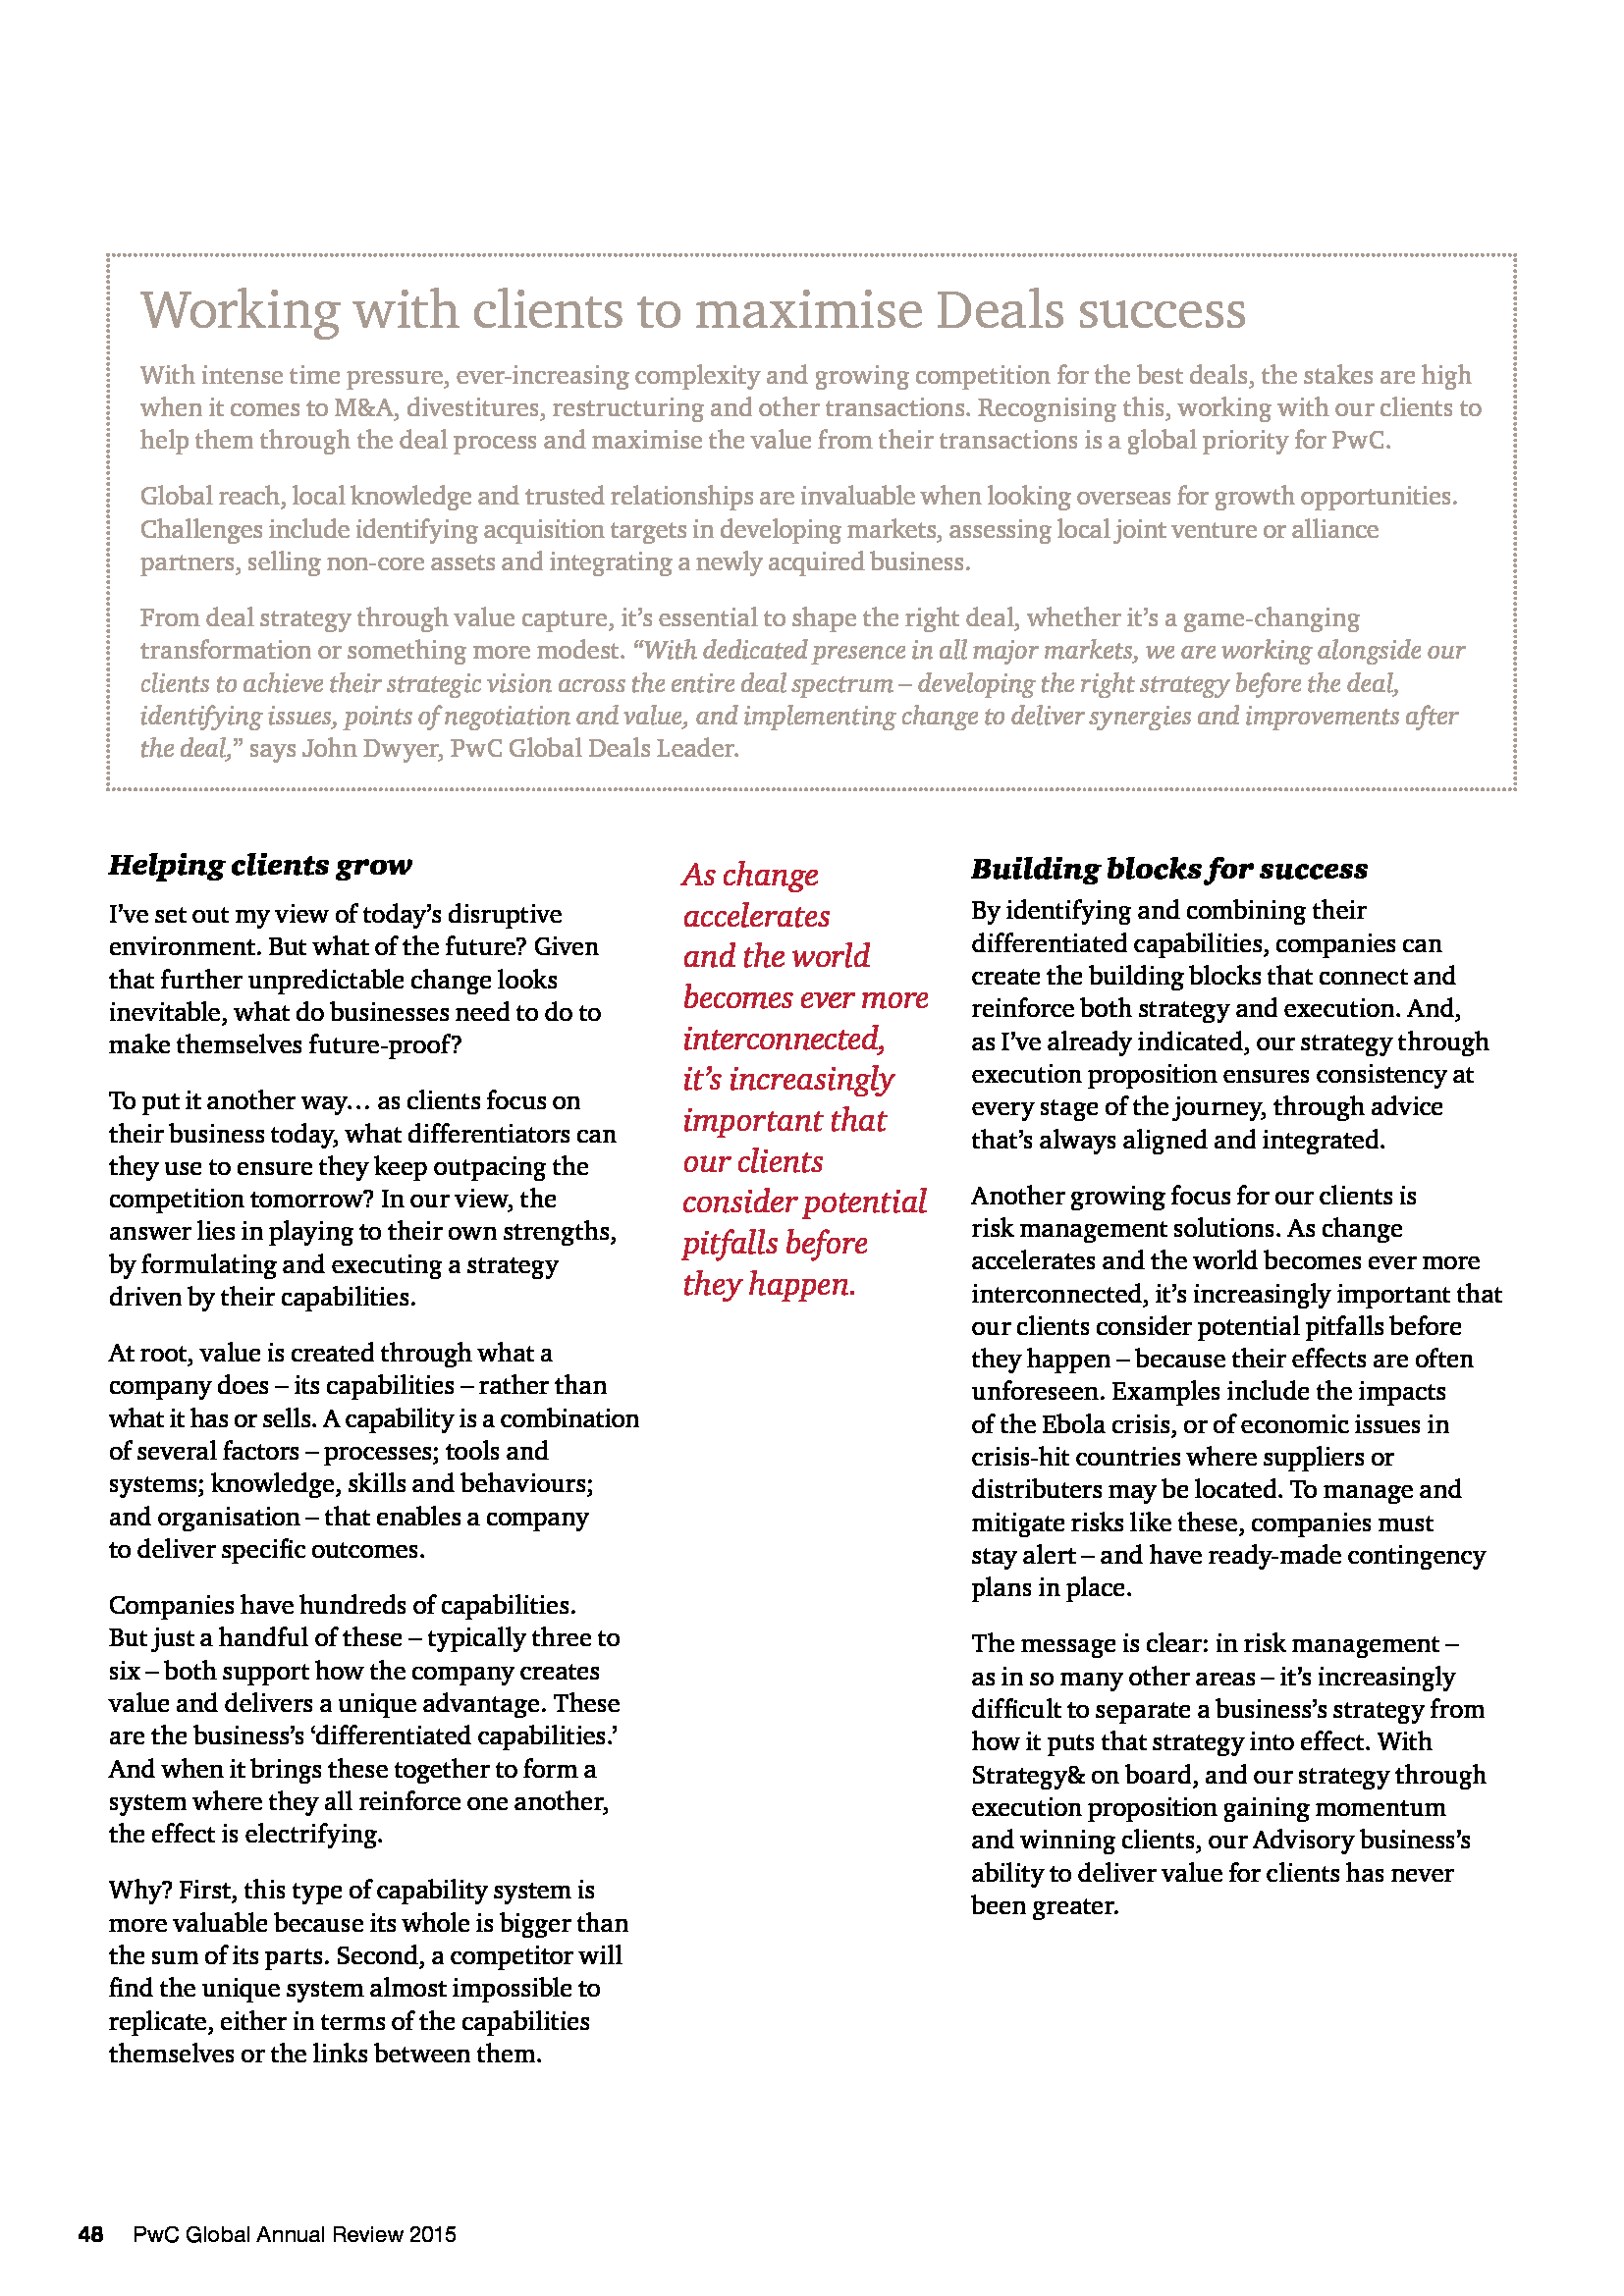 Advisorselect - Shaping our future - Global Annual Review 2015